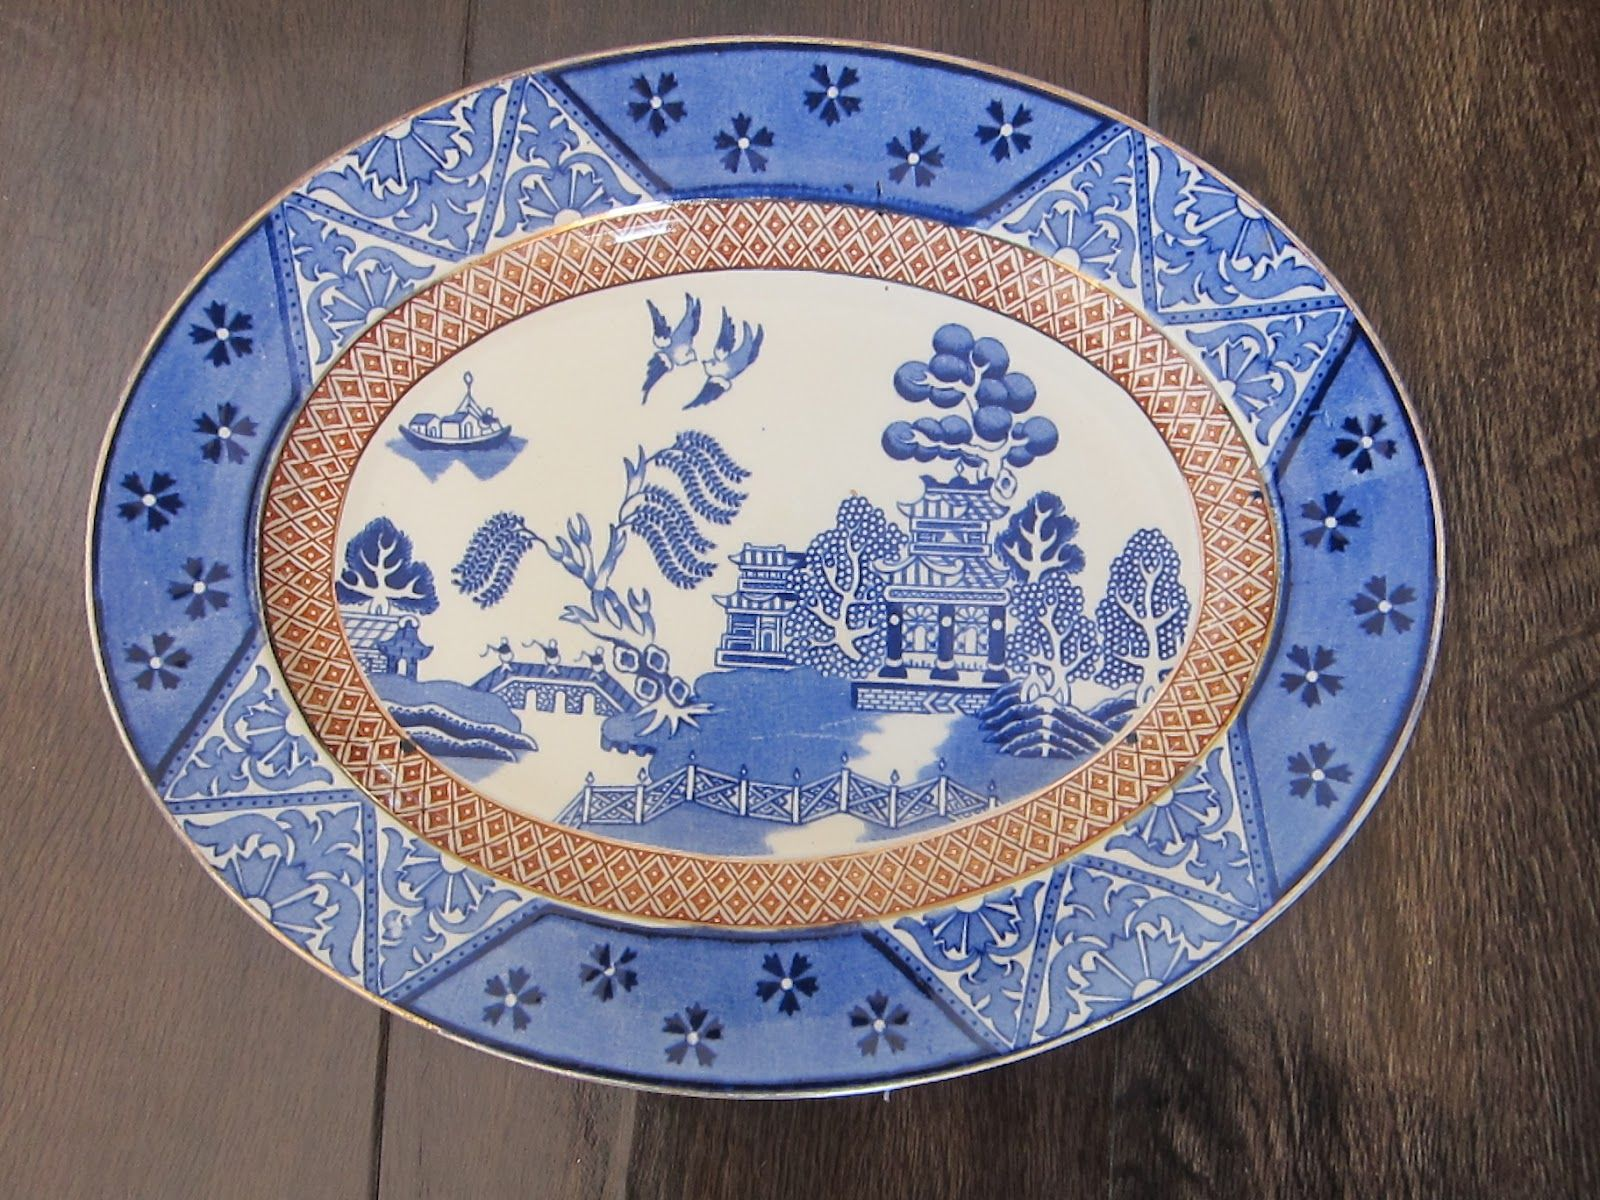 Blue and White Alfred Meakin China - Manchu